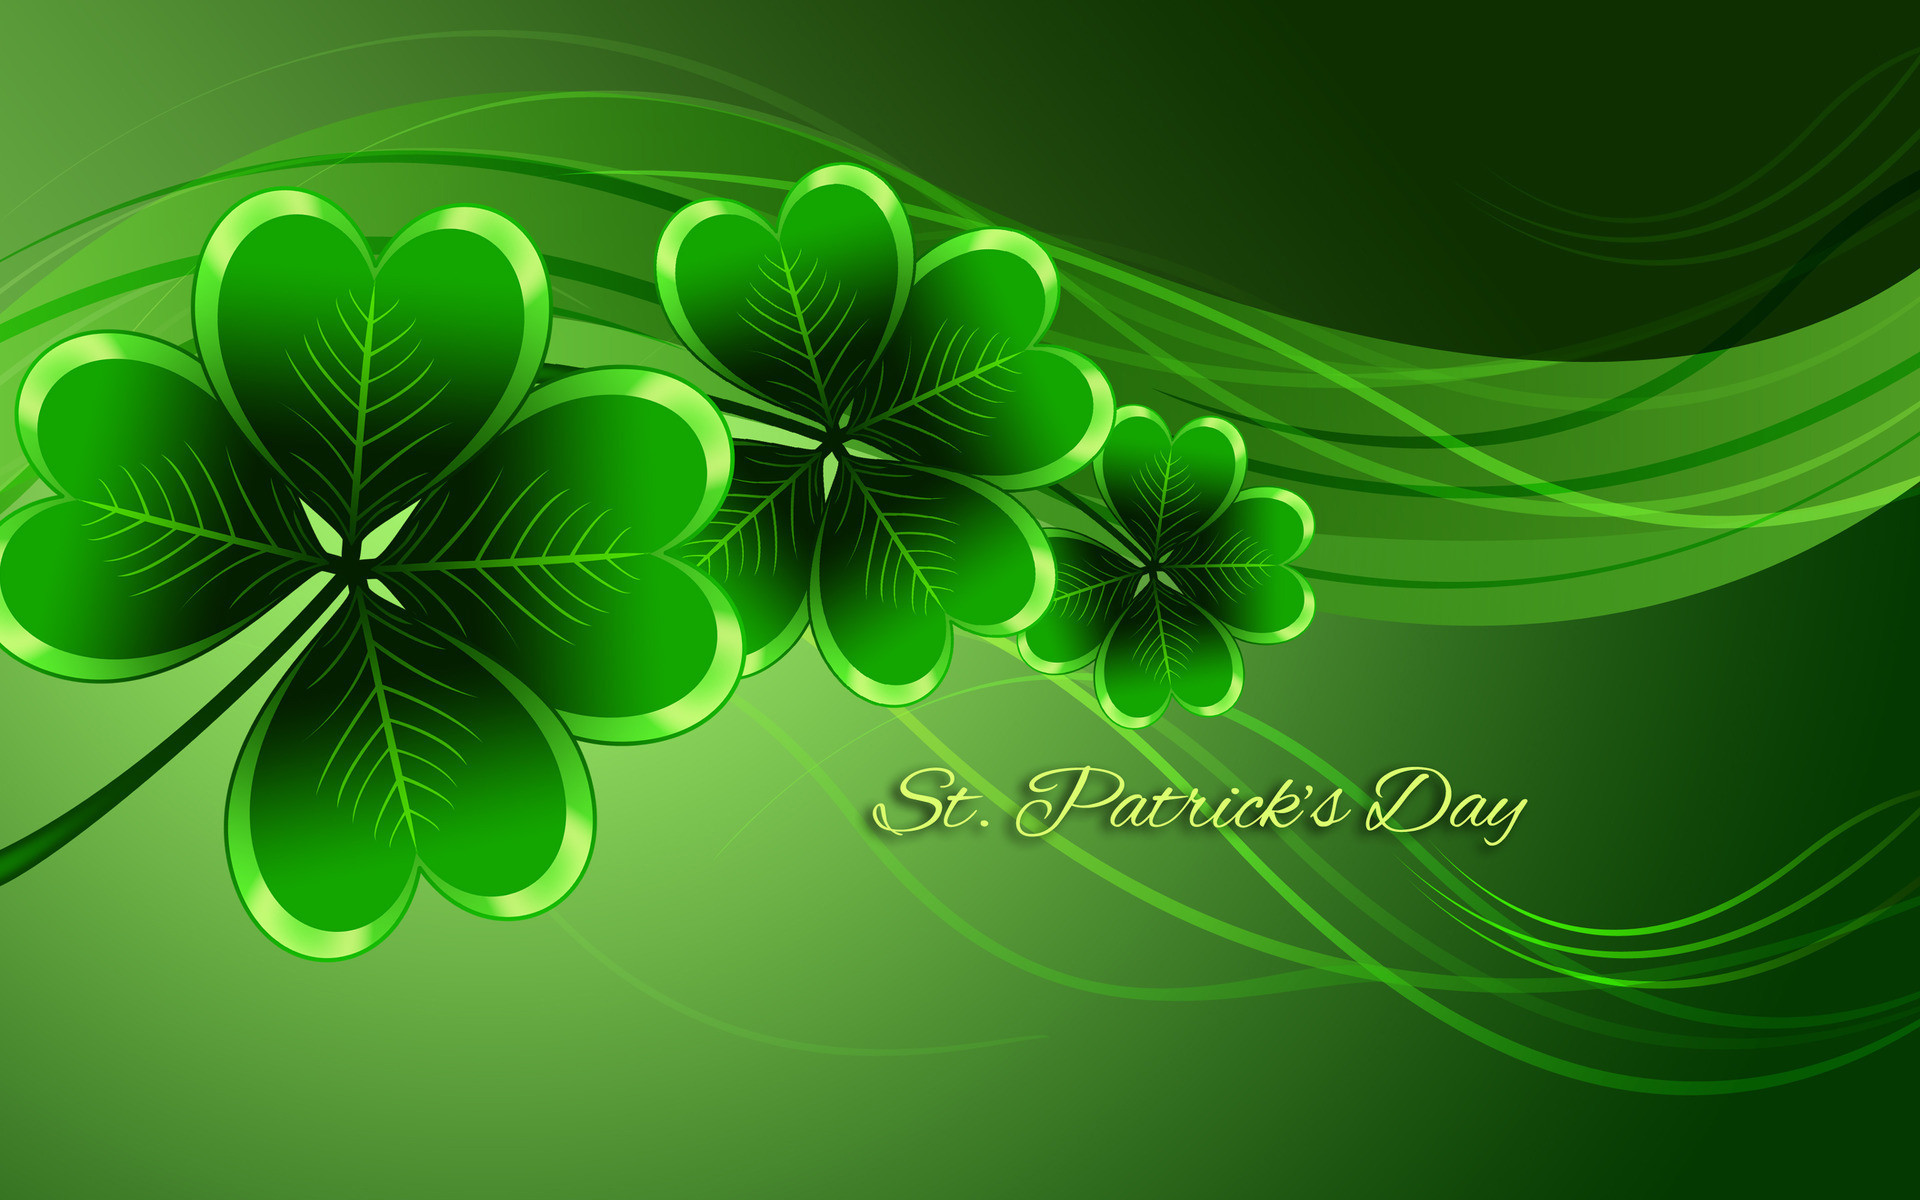 1920x1200 free st patricks day desktop wallpapers full hd amazing colourful free hi  res computer wallpapers best artwork 1920×1200 Wallpaper HD